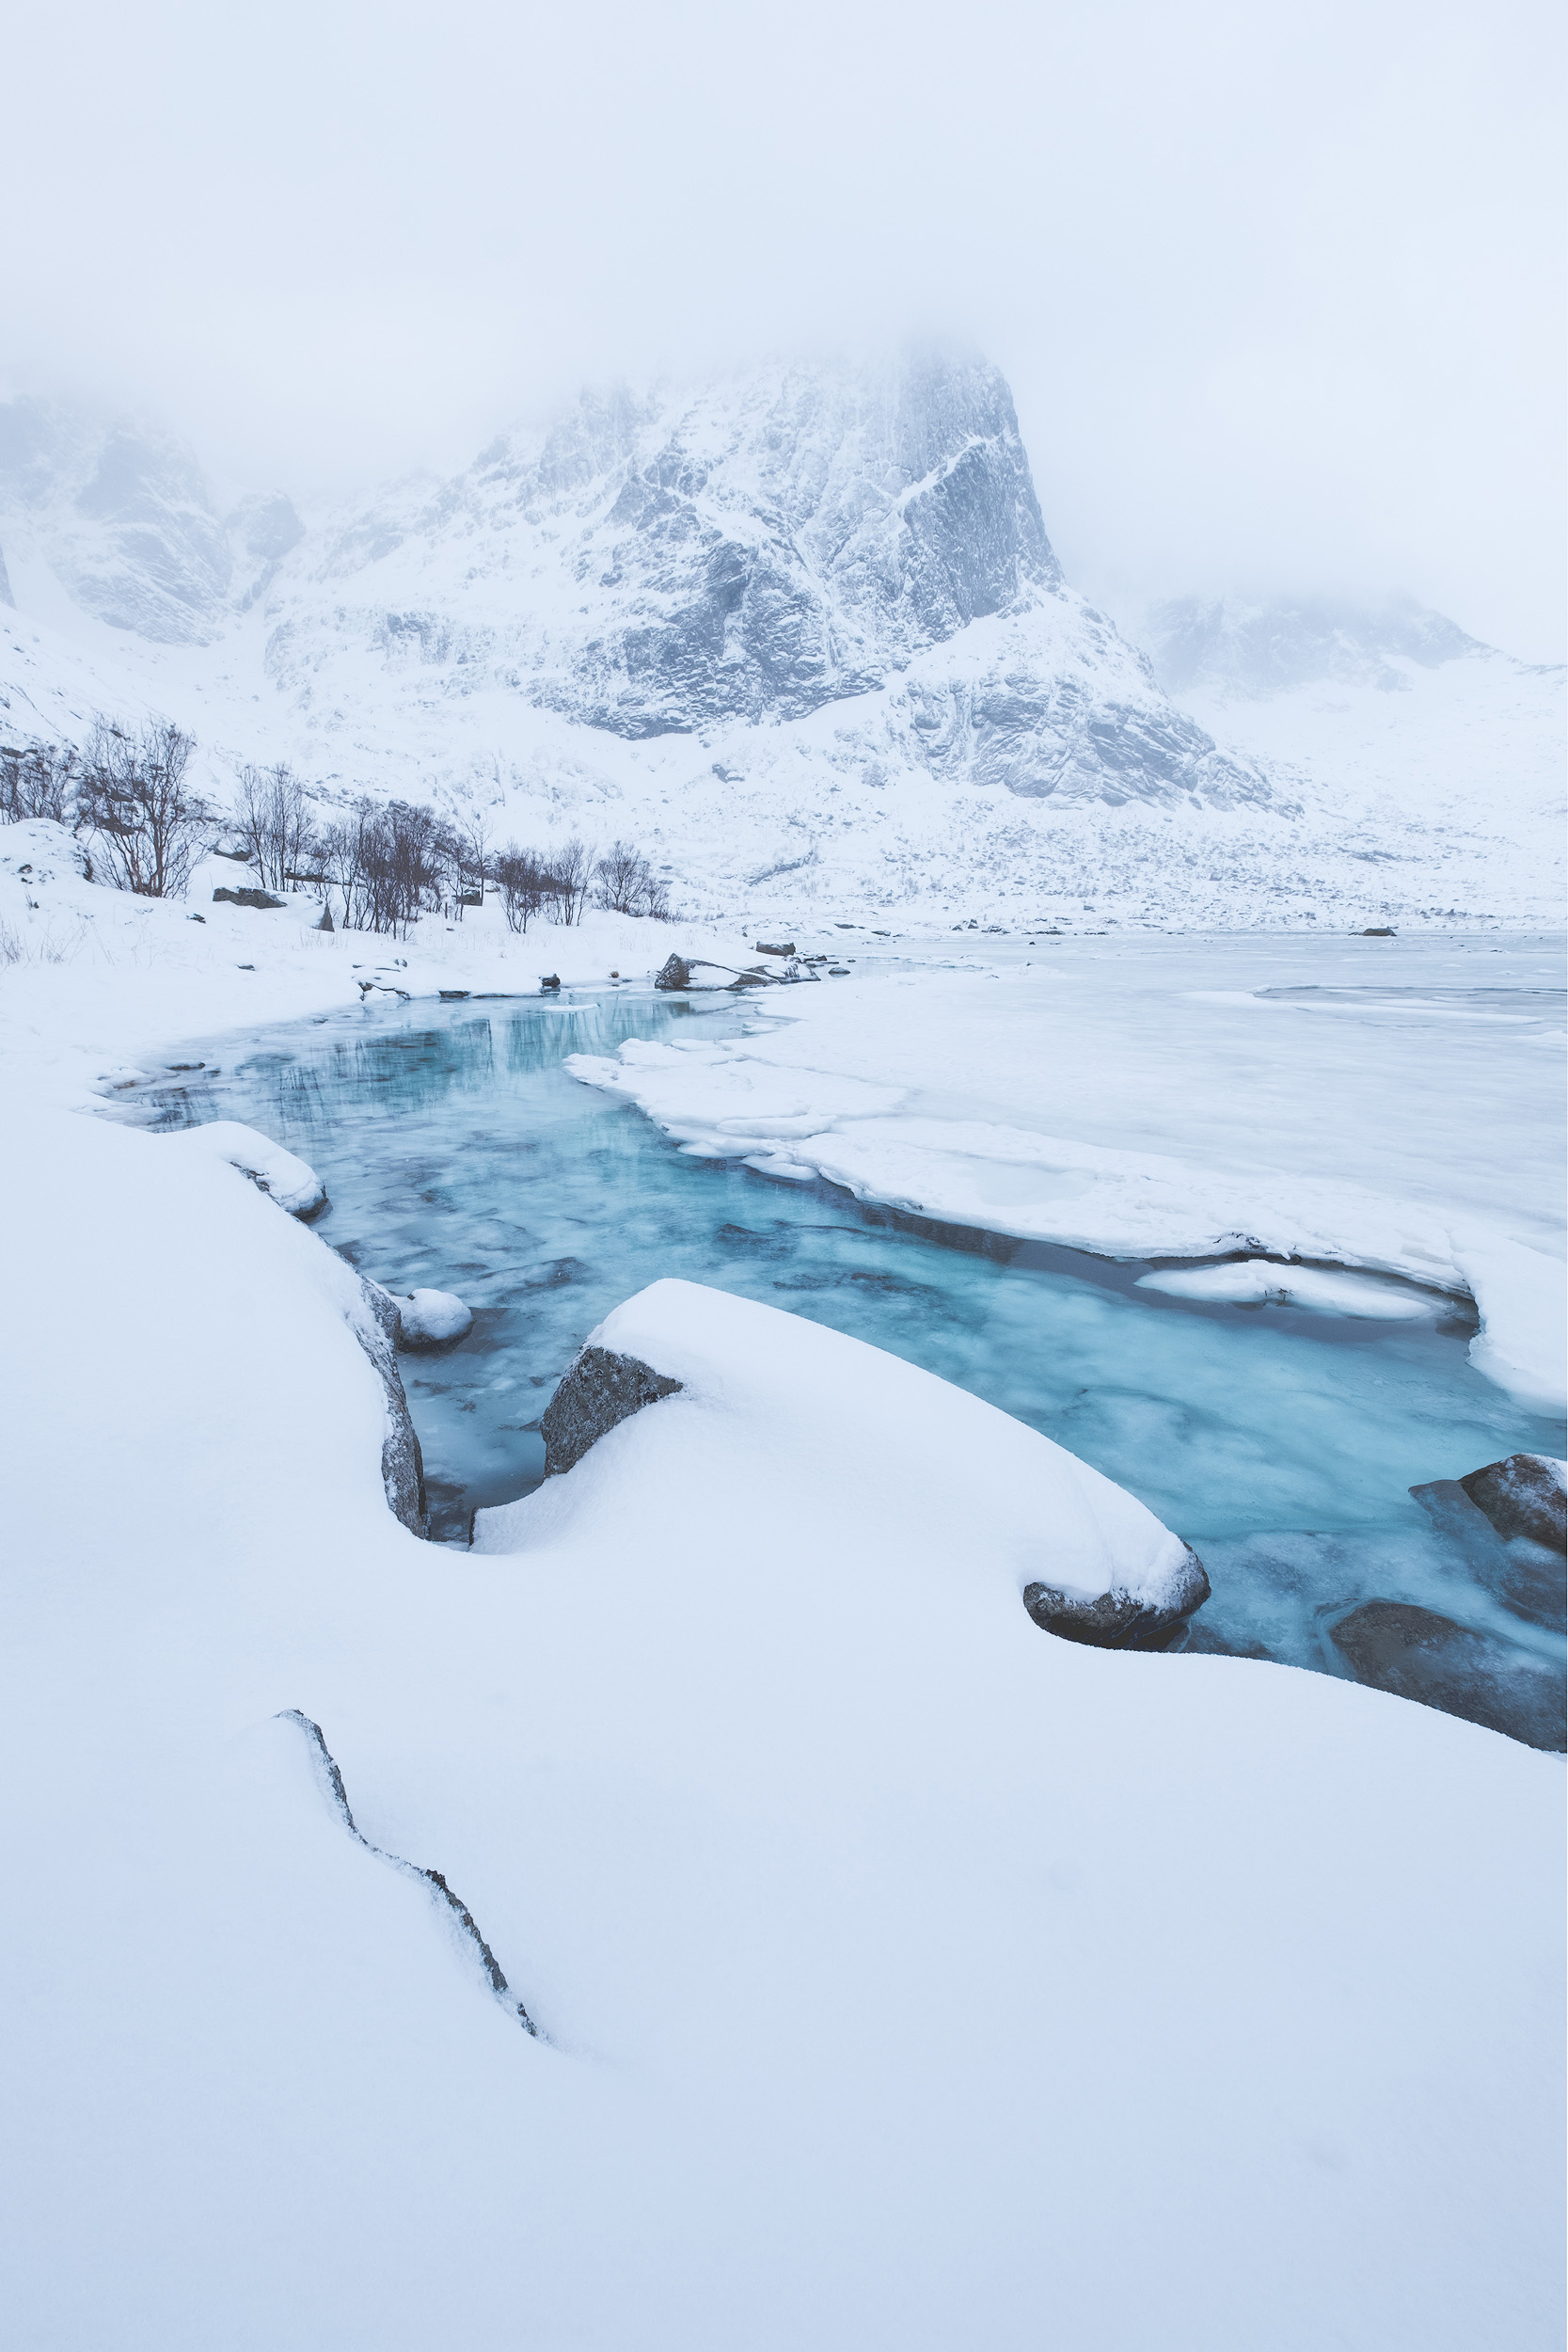 White & Blue   The clear blue water of an almost frozen fjord surrounded by the a fresh snowfall in the Lofoten Islands, Norway